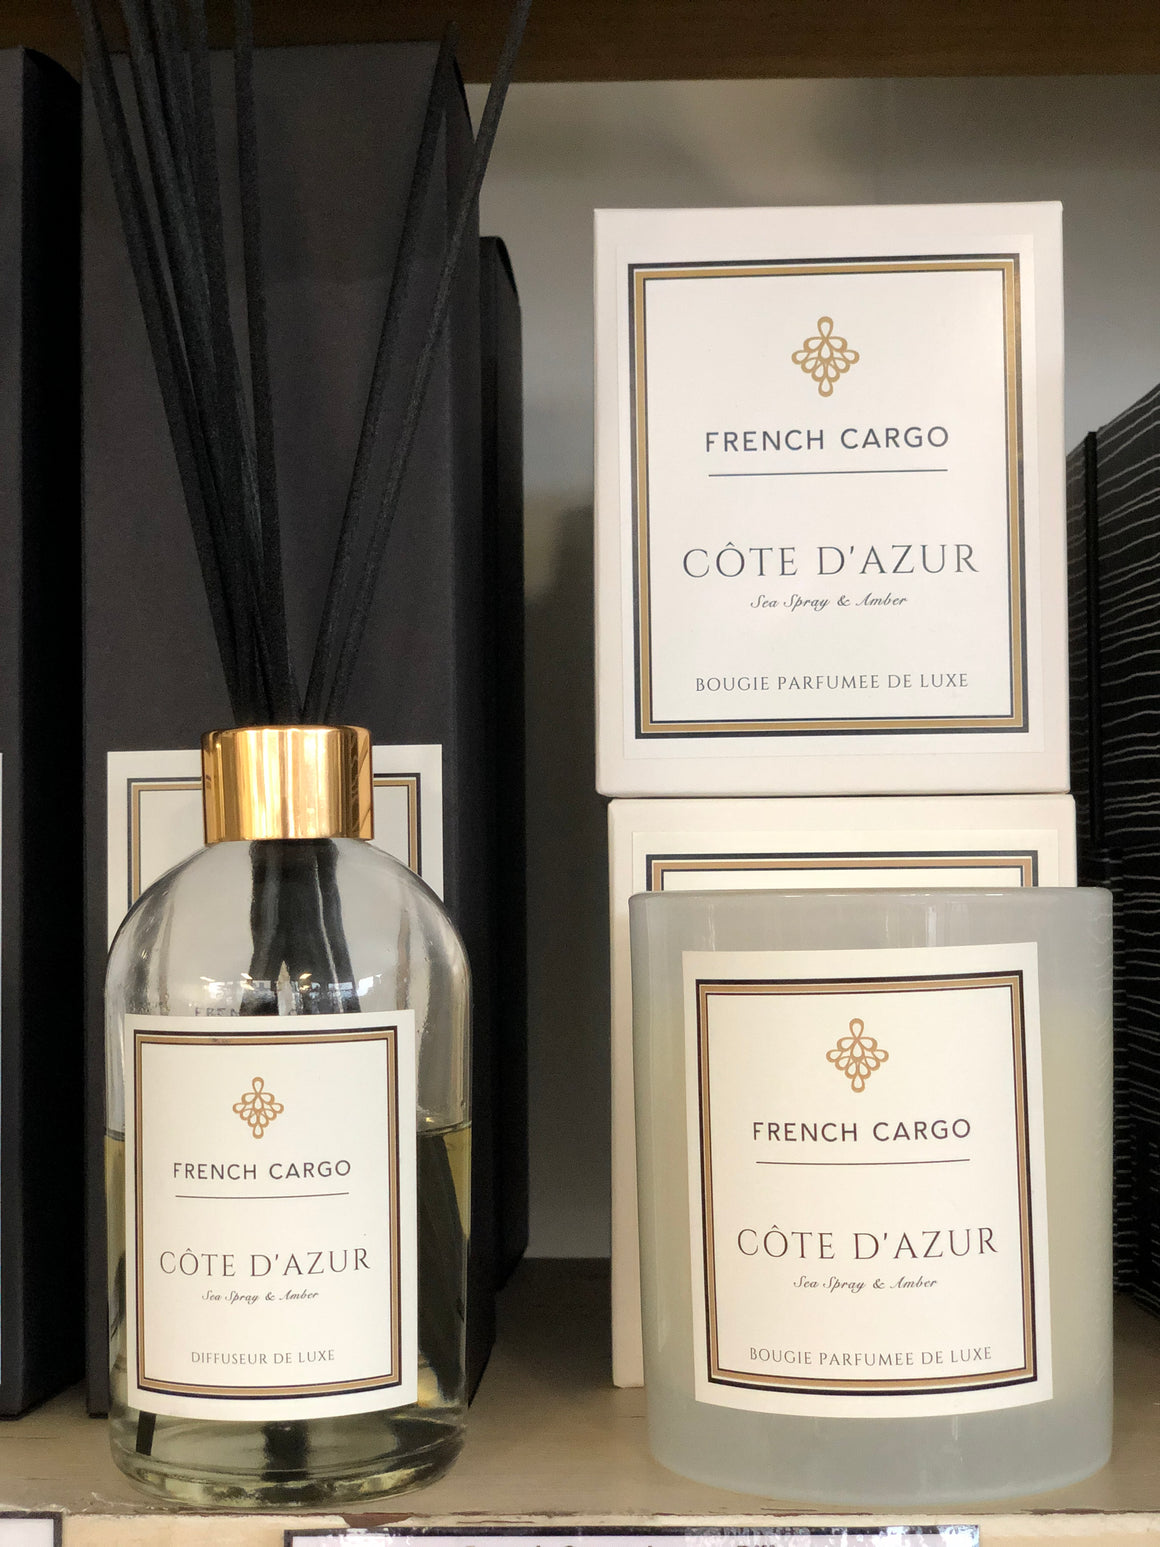 French Cargo Signature Collection Diffuser - Cote D'Azur